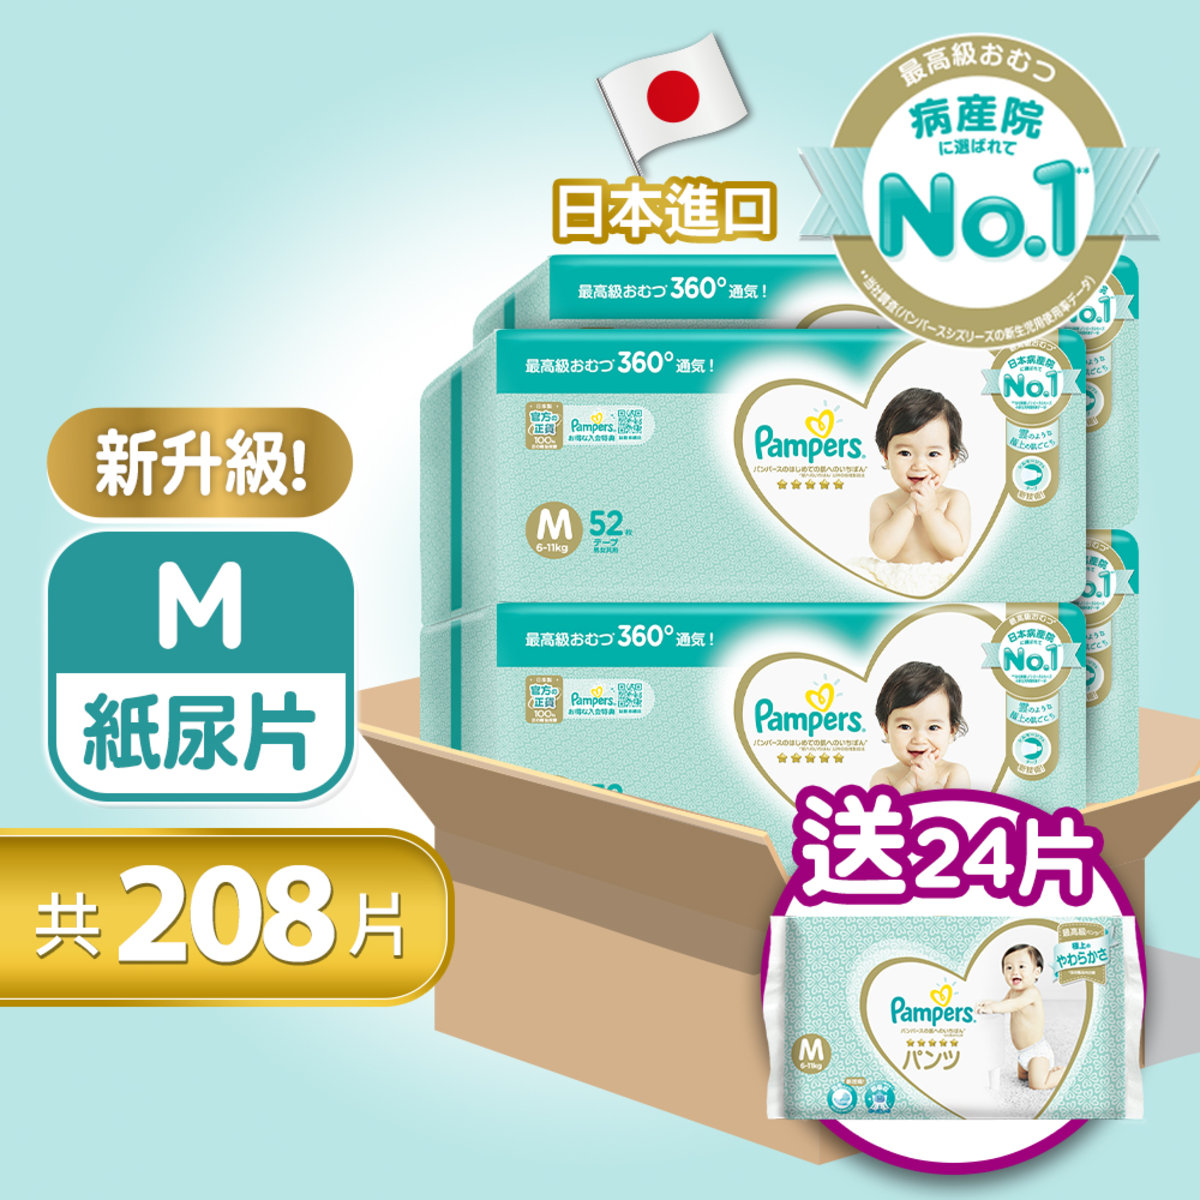 [Full Case](M) Ichiban Diapers 208s - Free: 24s Pants(M)